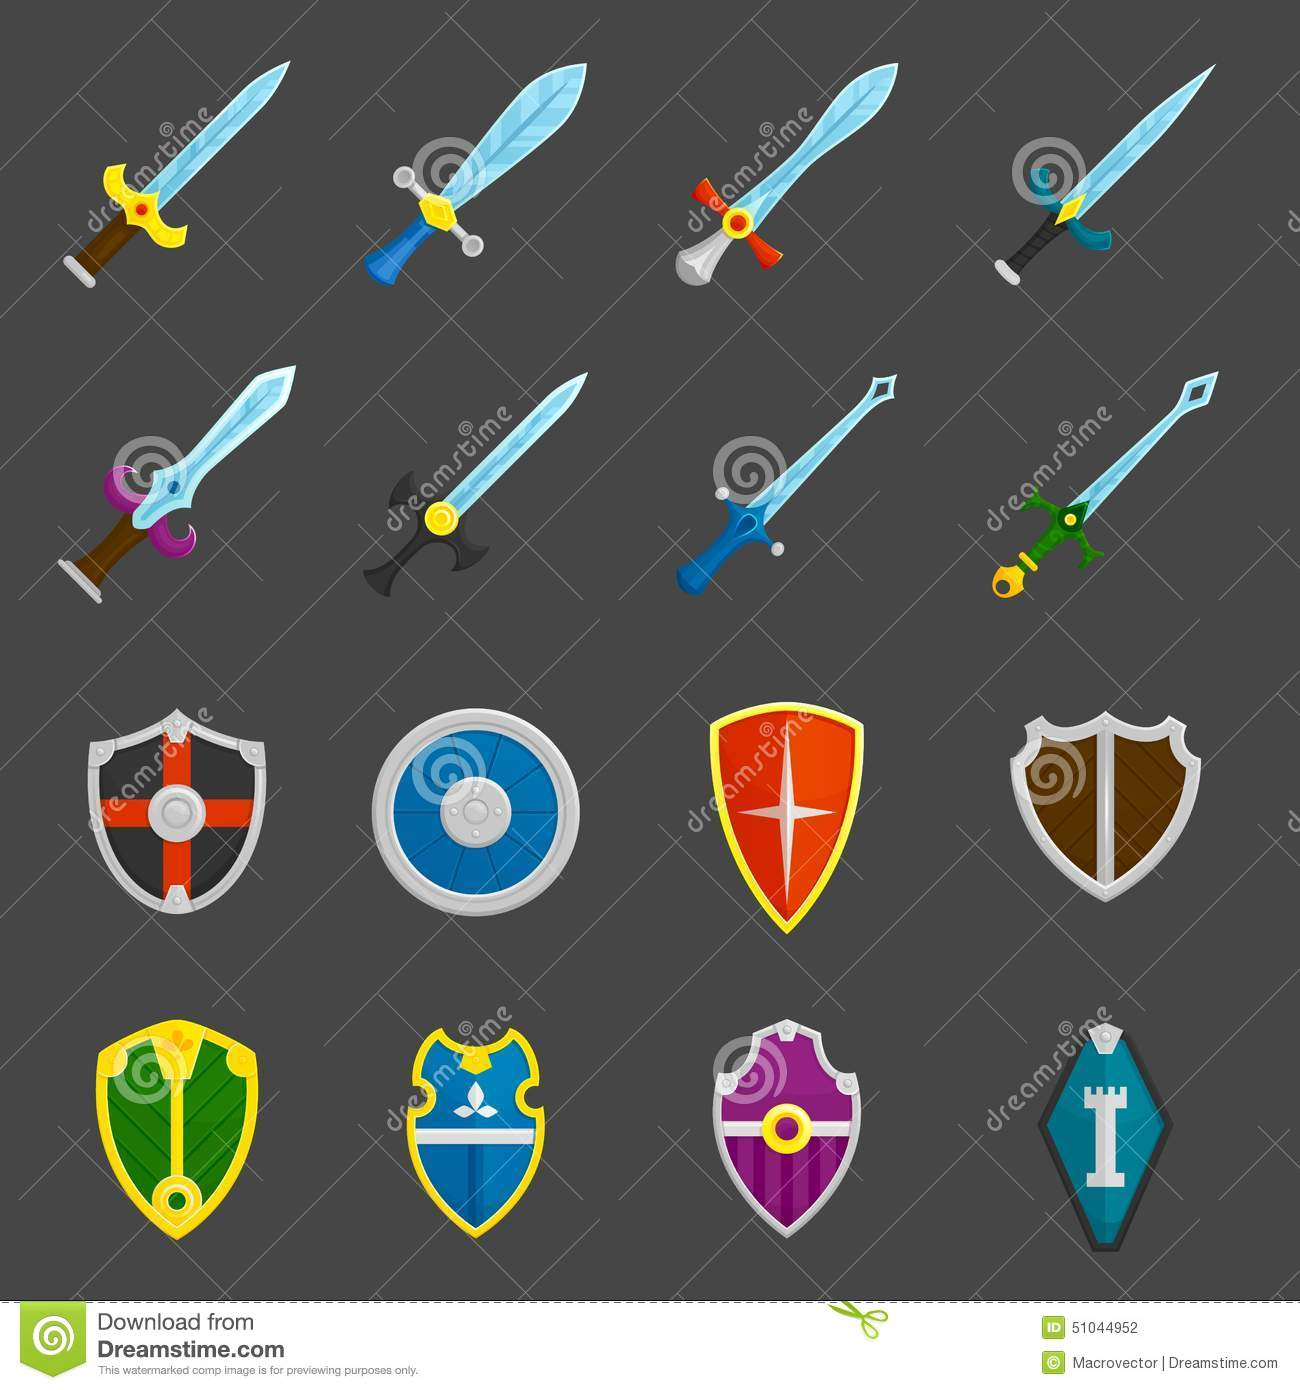 Crusader Shields And Swords Cartoon Vector Cartoondealer